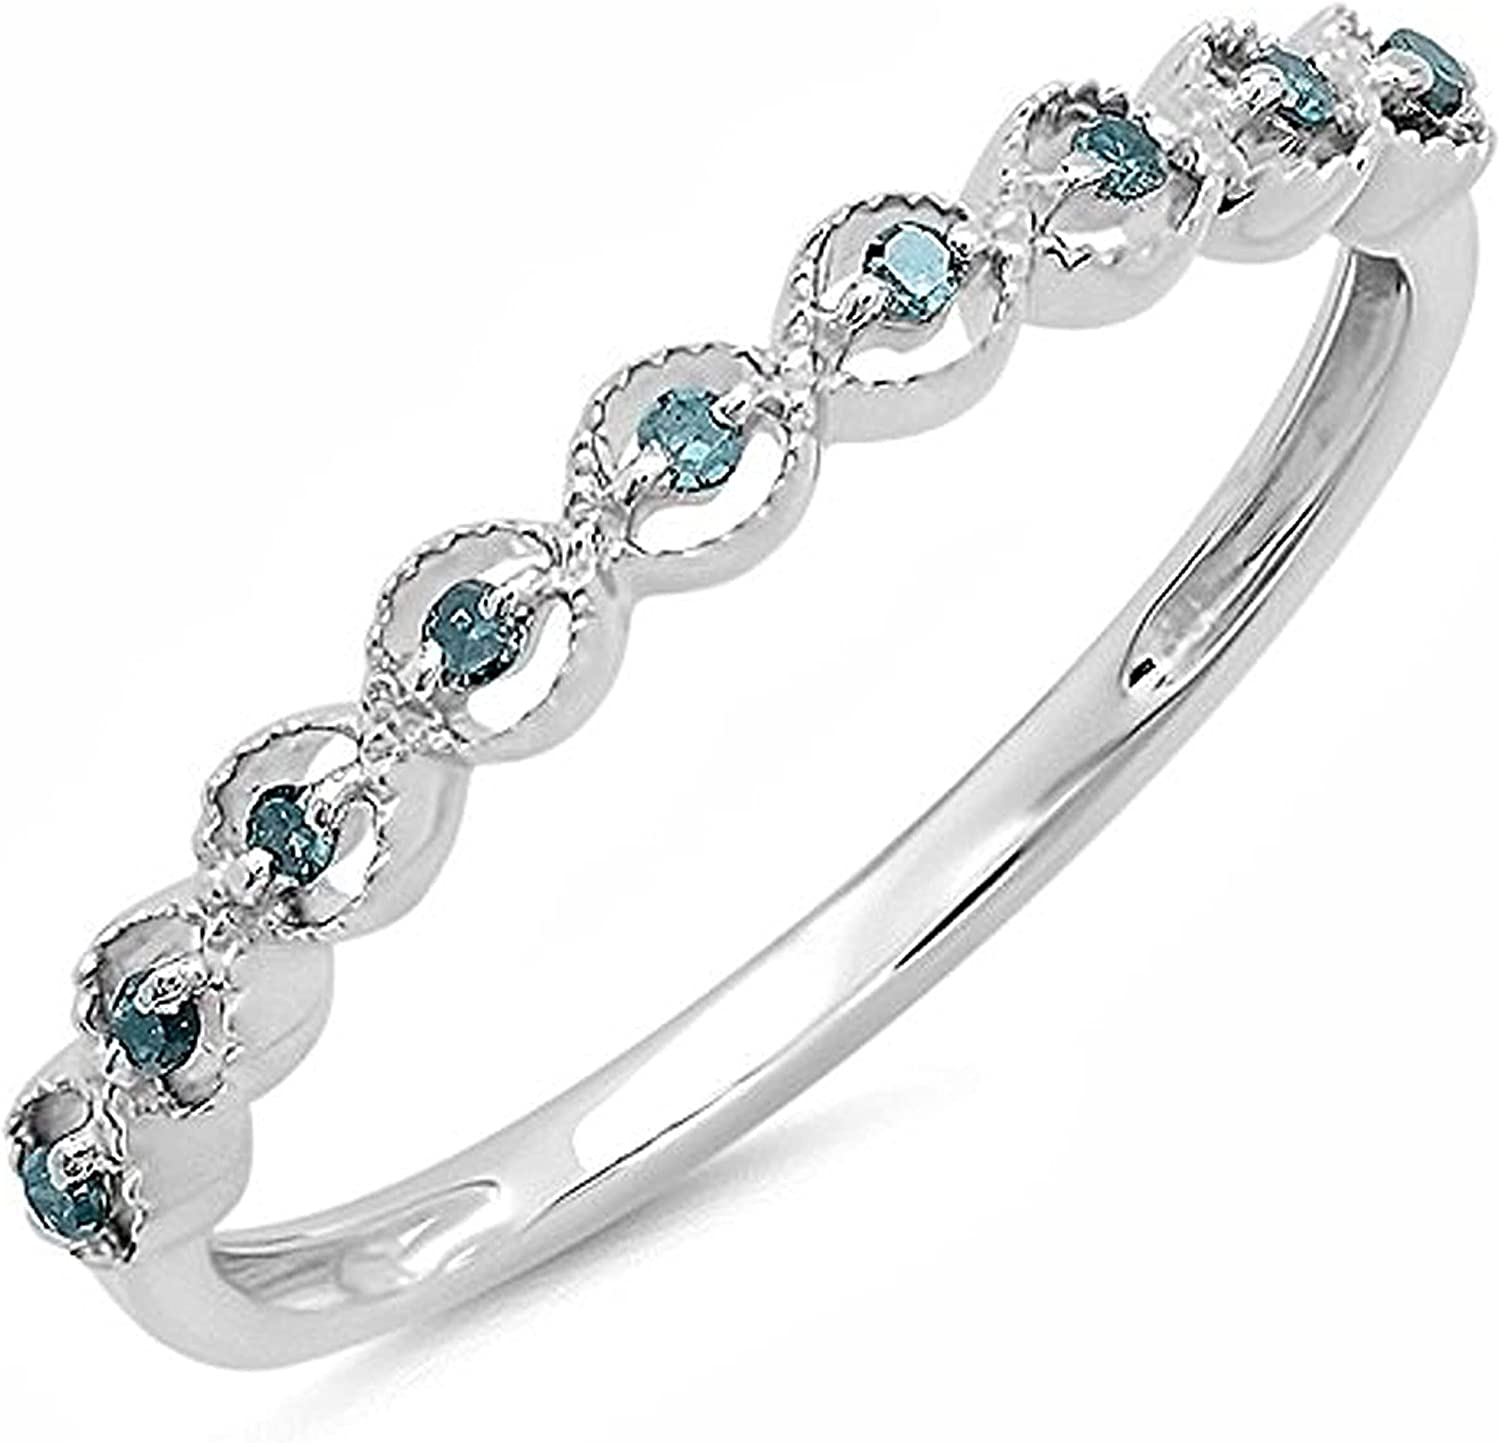 Dazzlingrock Sales for sale Collection Round Gemstone ! Super beauty product restock quality top! Wedding or Ladies Diamond